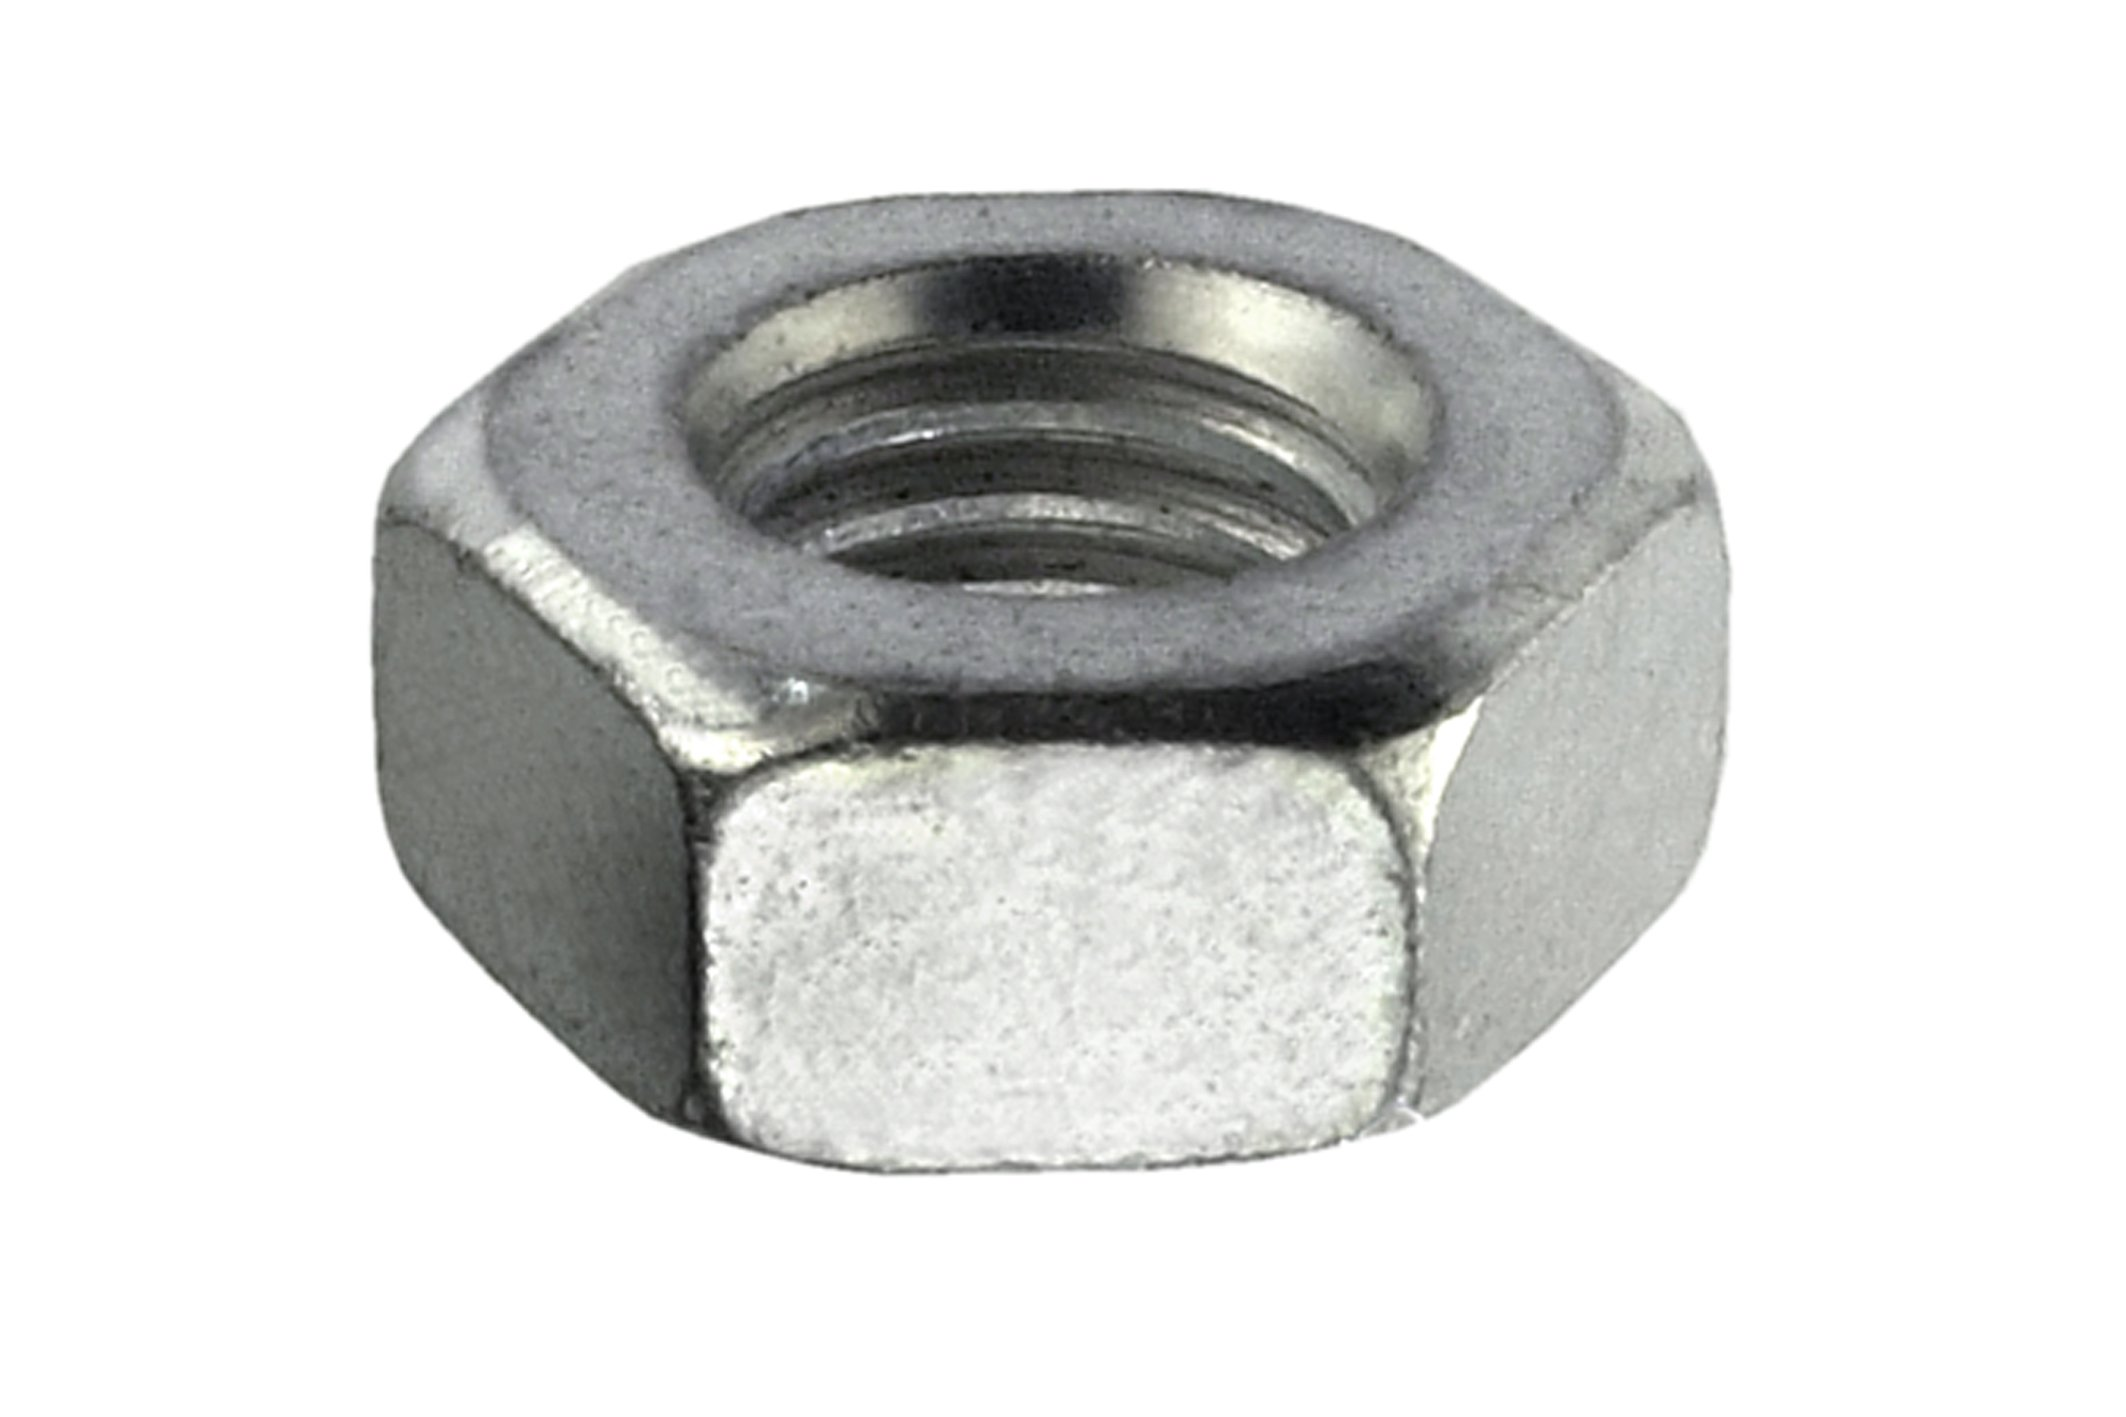 Max-Power klin00358Stainless Hex Nuts M5, 1kg, Blue